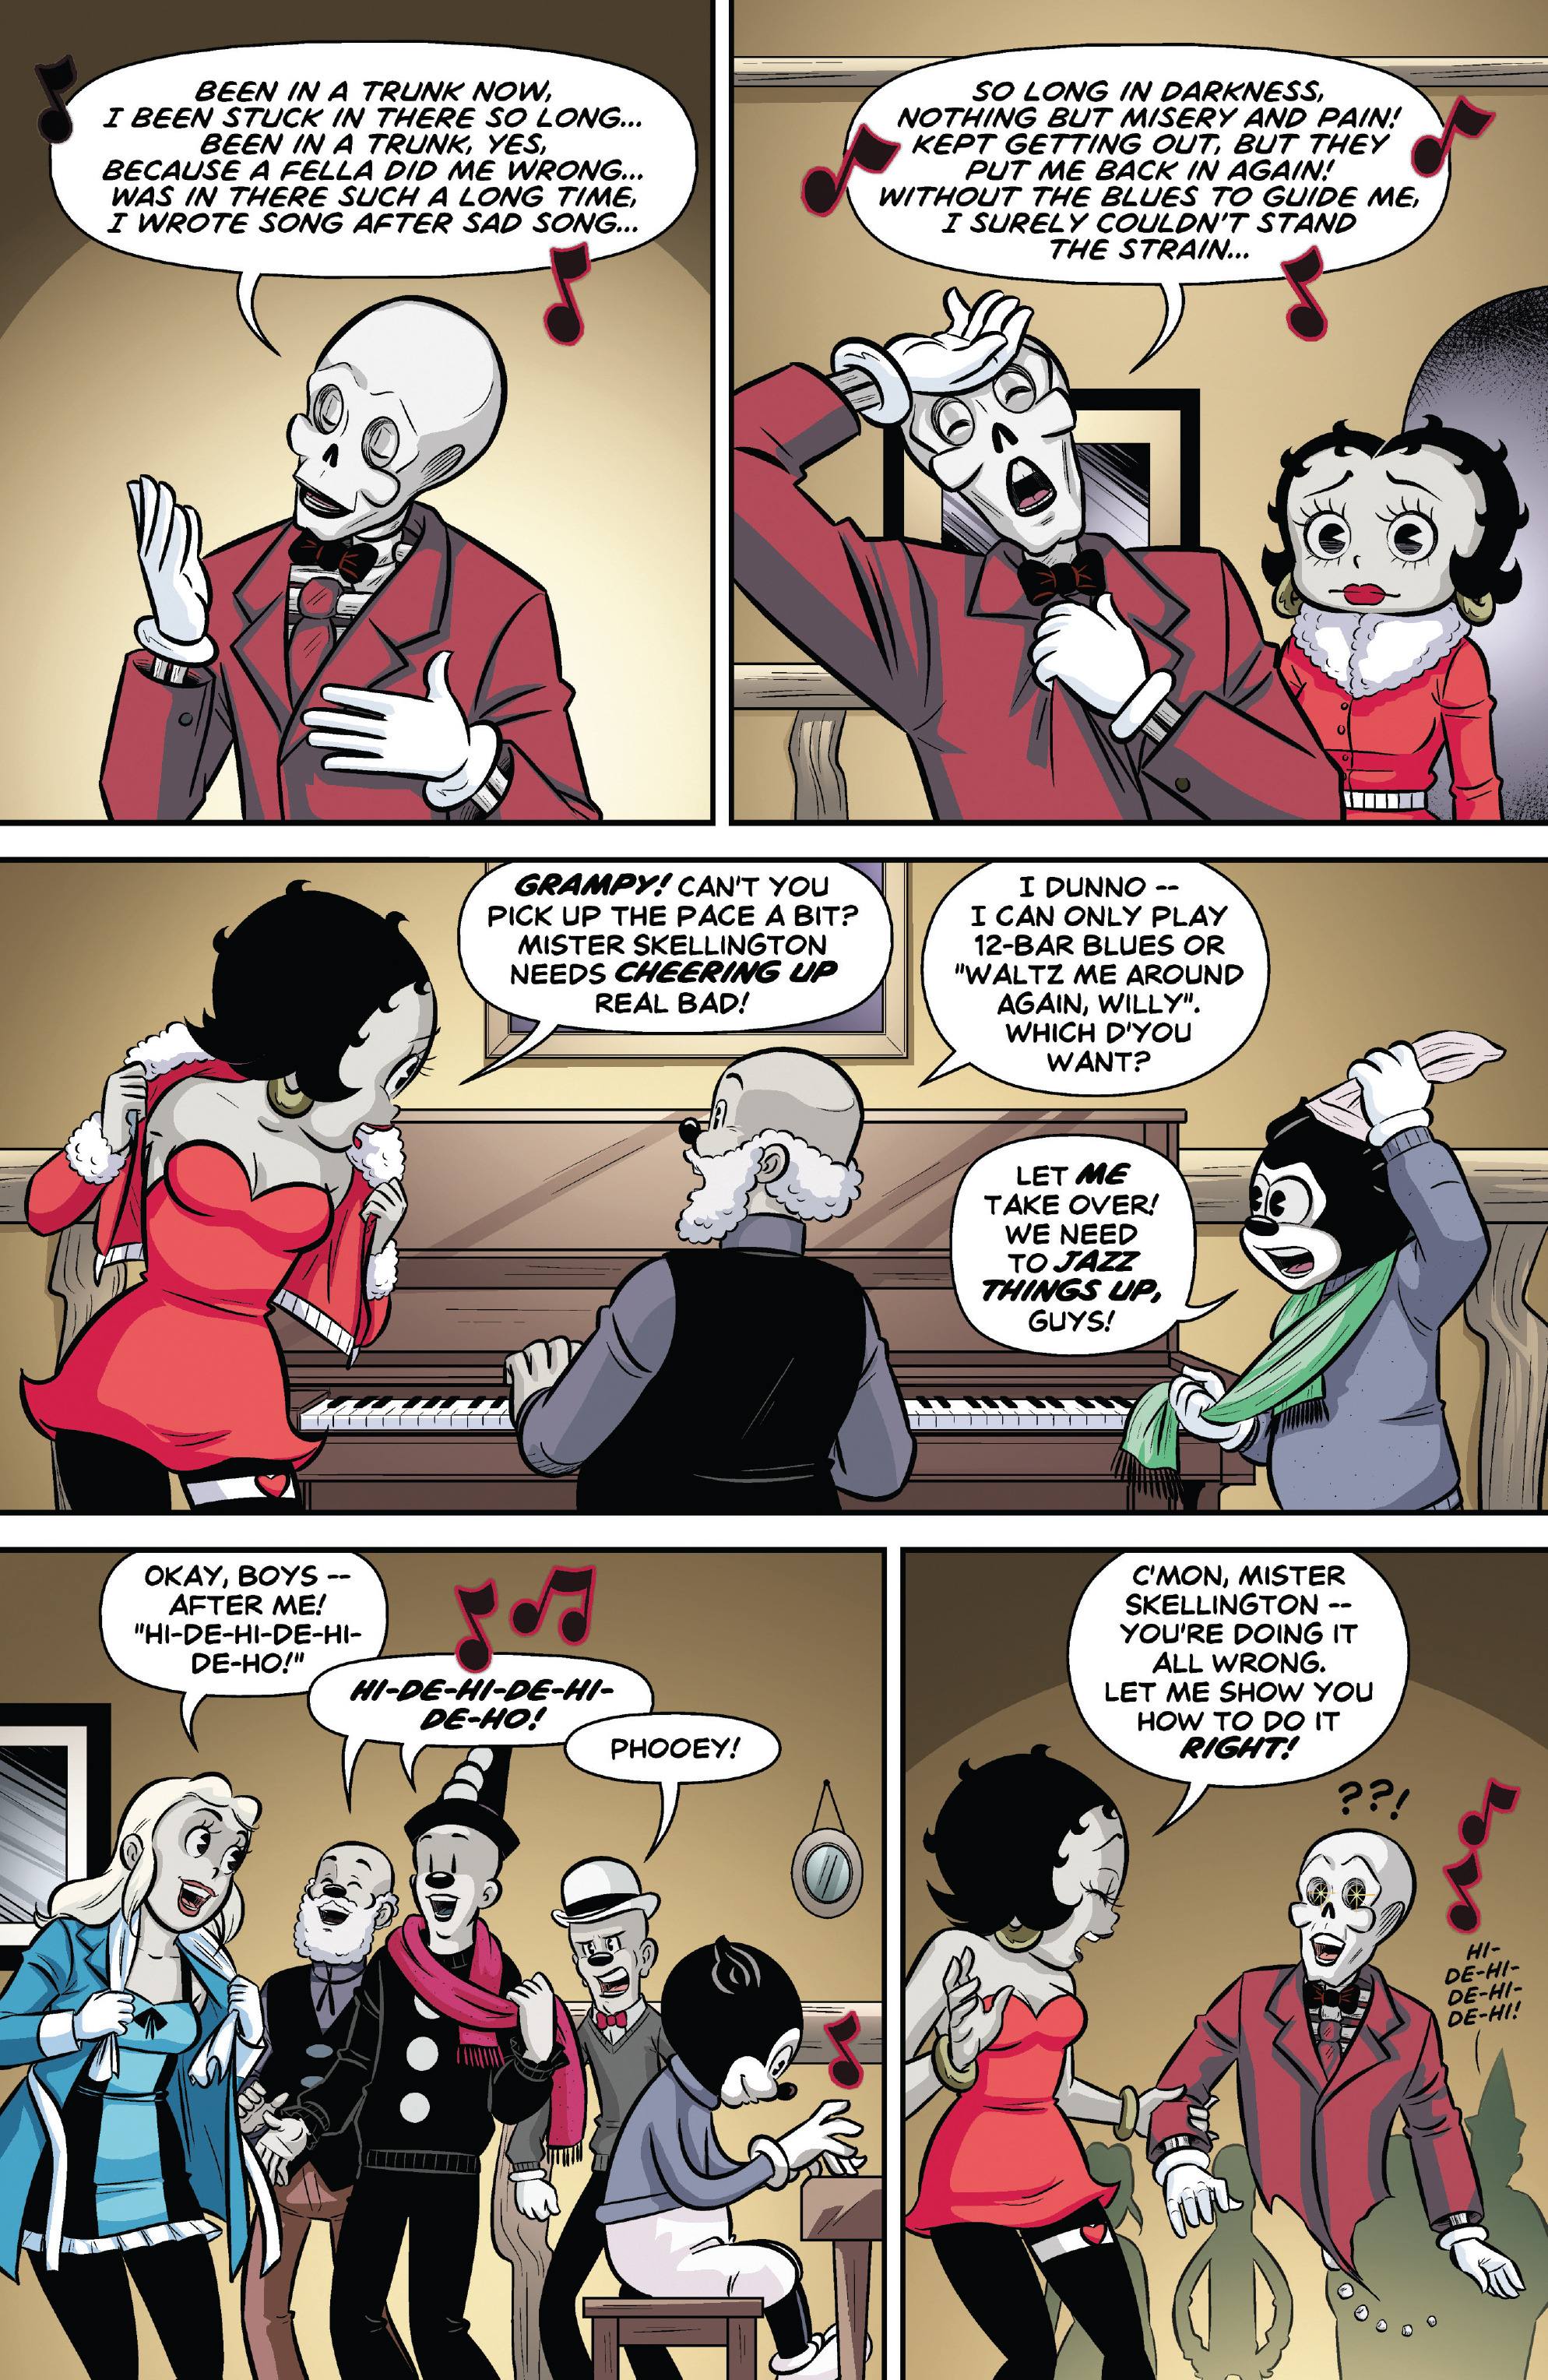 Betty Boop Dynamite Comic #4 (Page 17) by Rapper1996